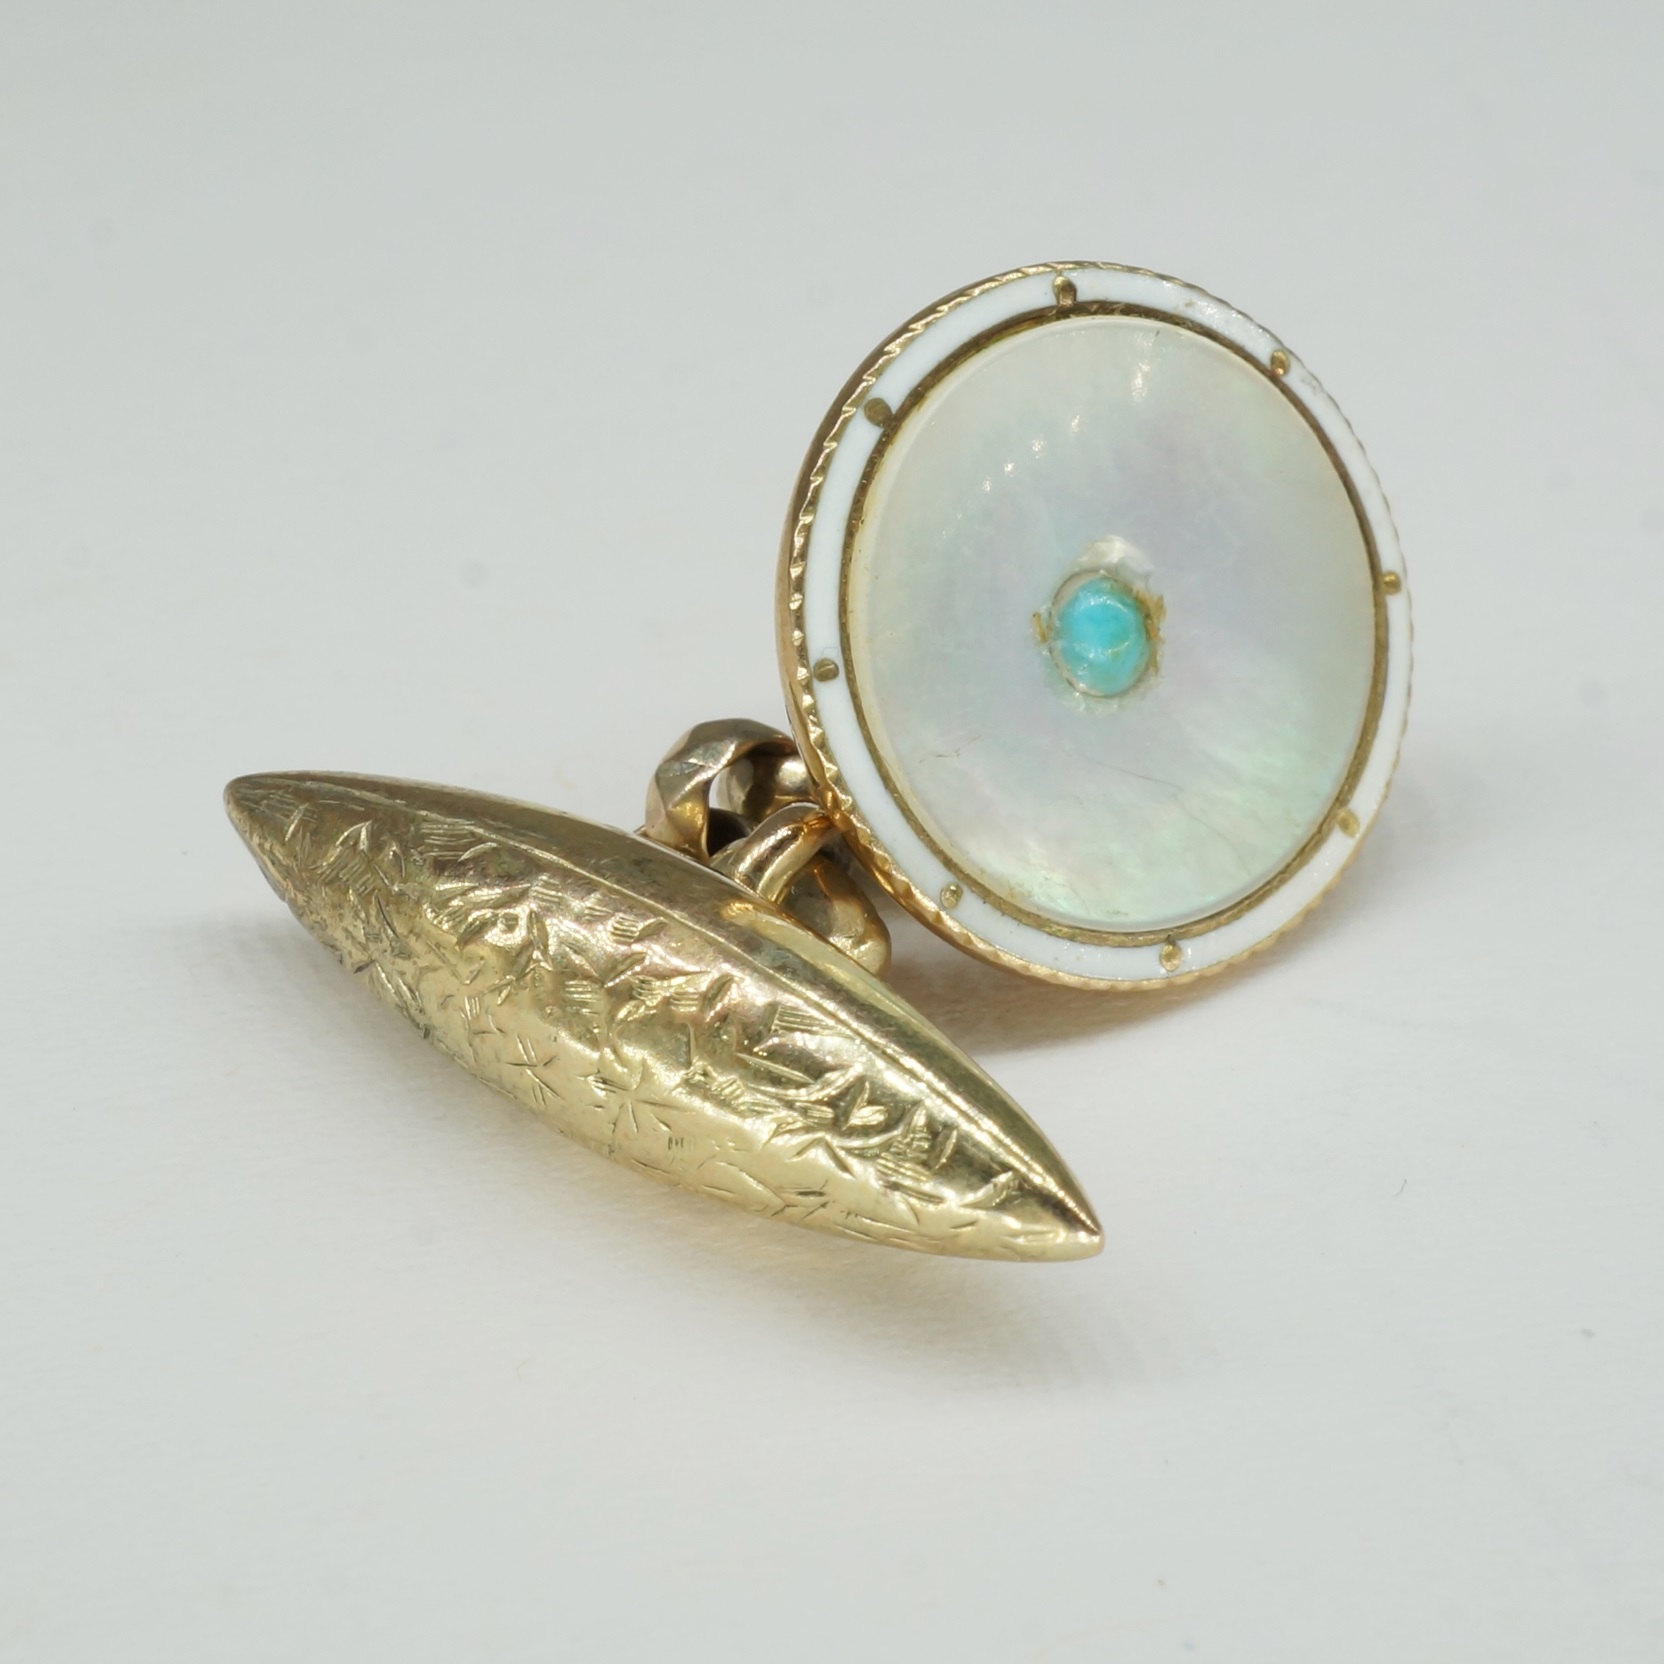 '9ct Gold Enamel and Mother of Pearl Button'